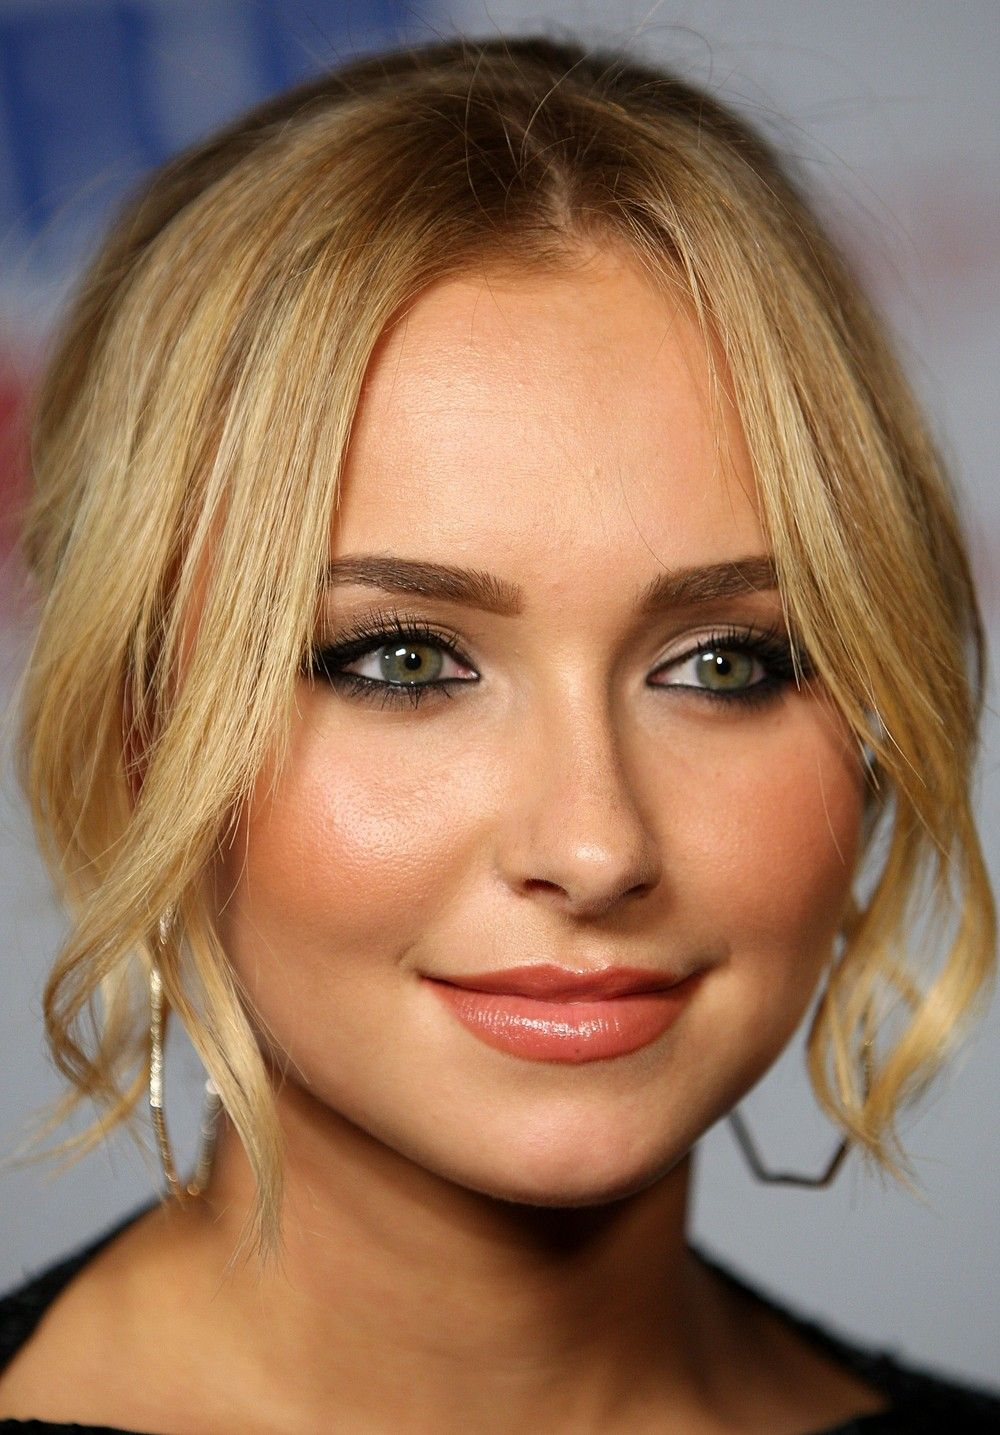 what makeup does hayden panettiere use